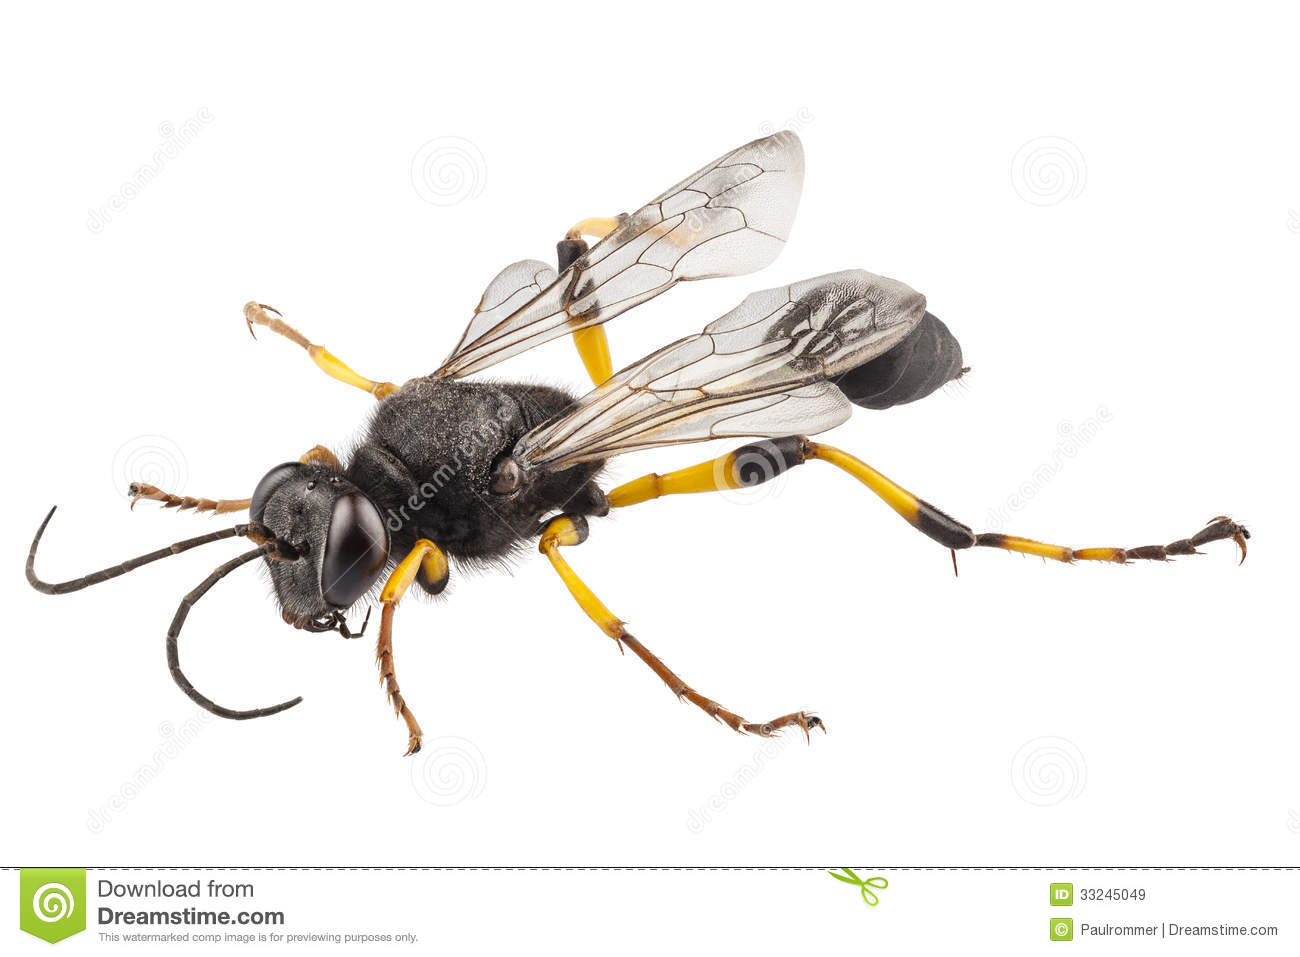 Displaying 20 gt images for black and yellow mud dauber